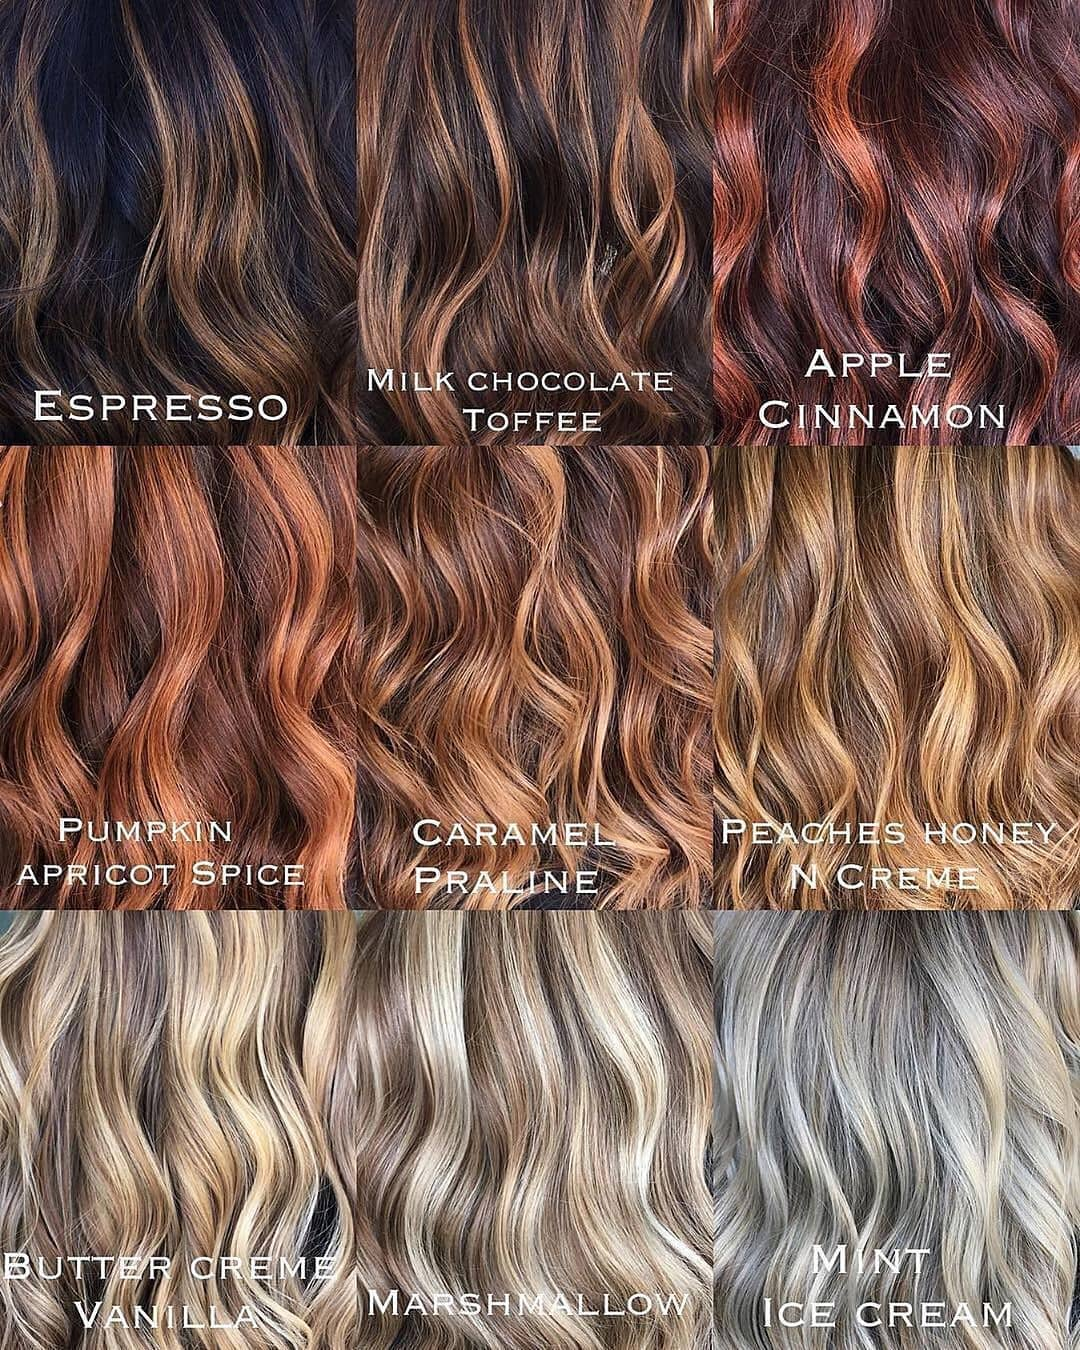 Which One Is Your Favorite??? Comment Pl Haircolor - Hair Tutorial